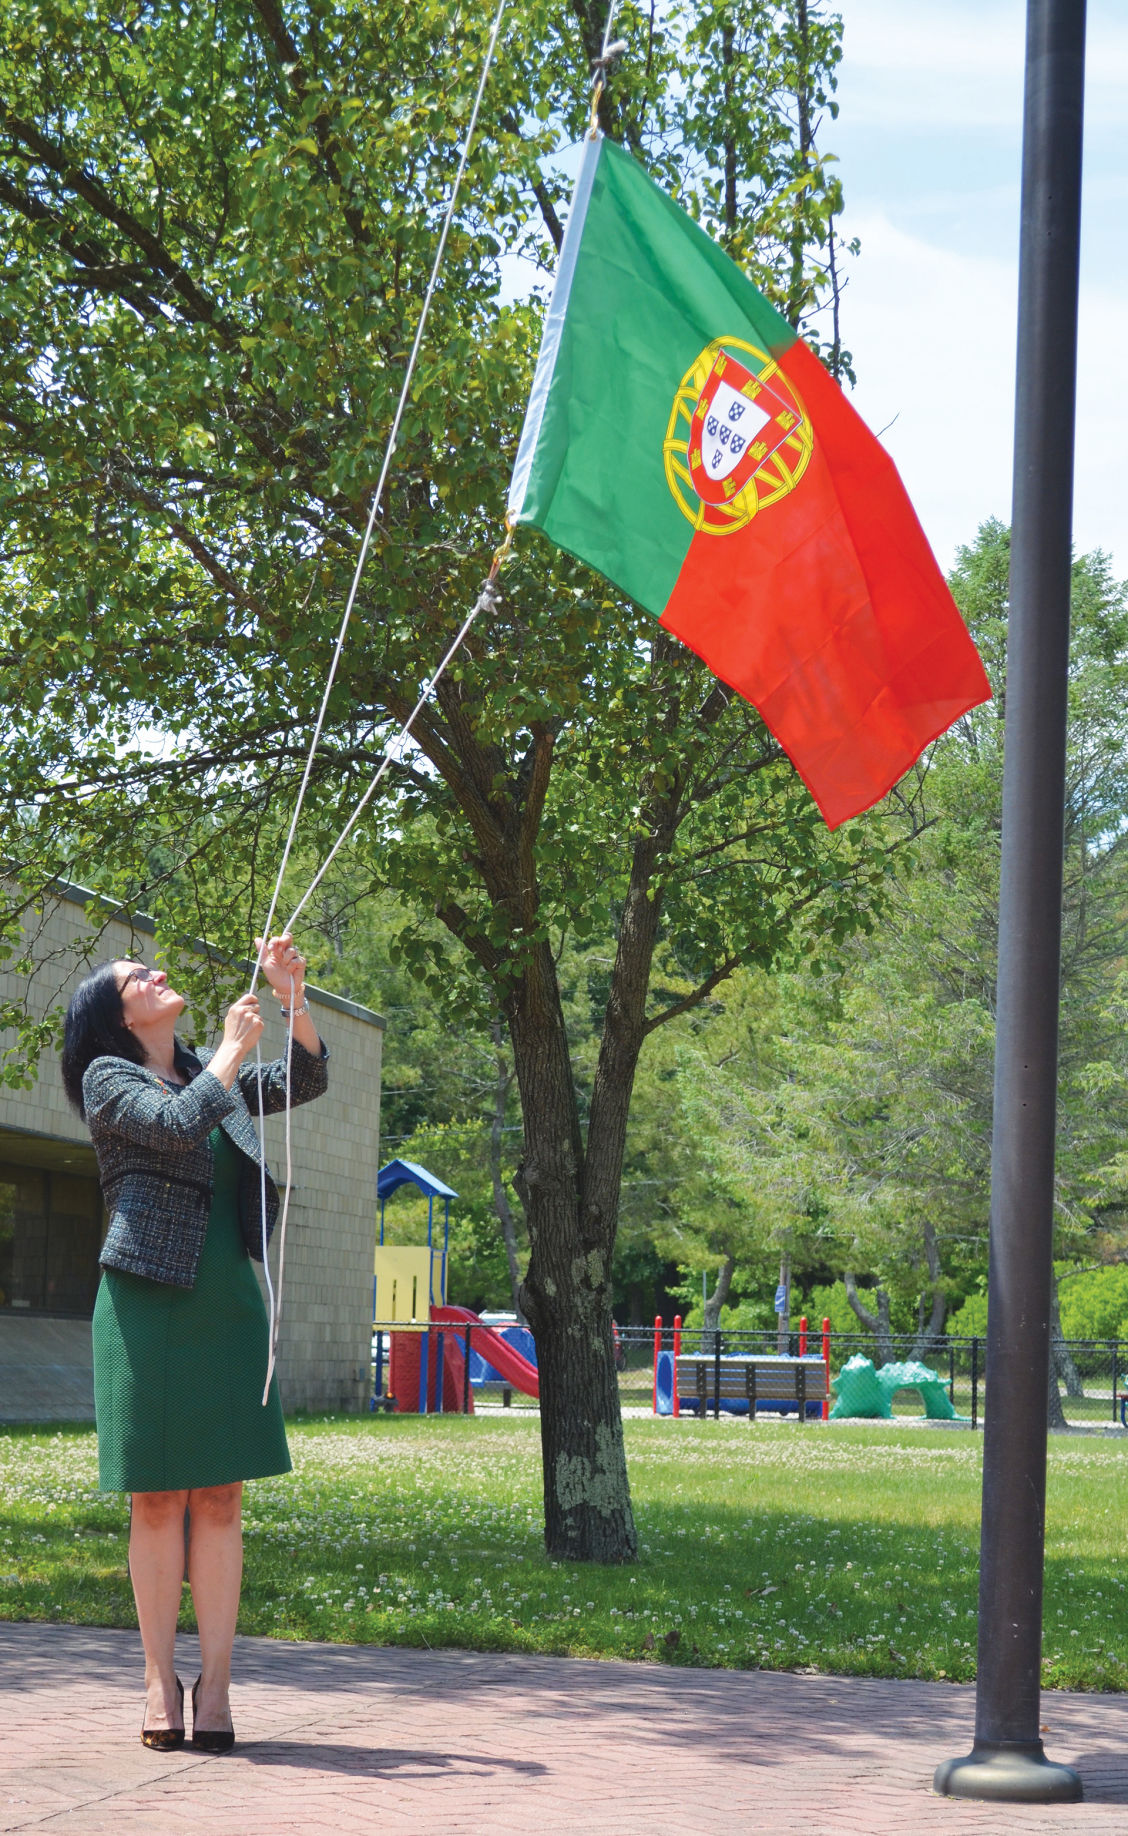 Ceremony in Coventry held in honor of Day of Portugal holiday